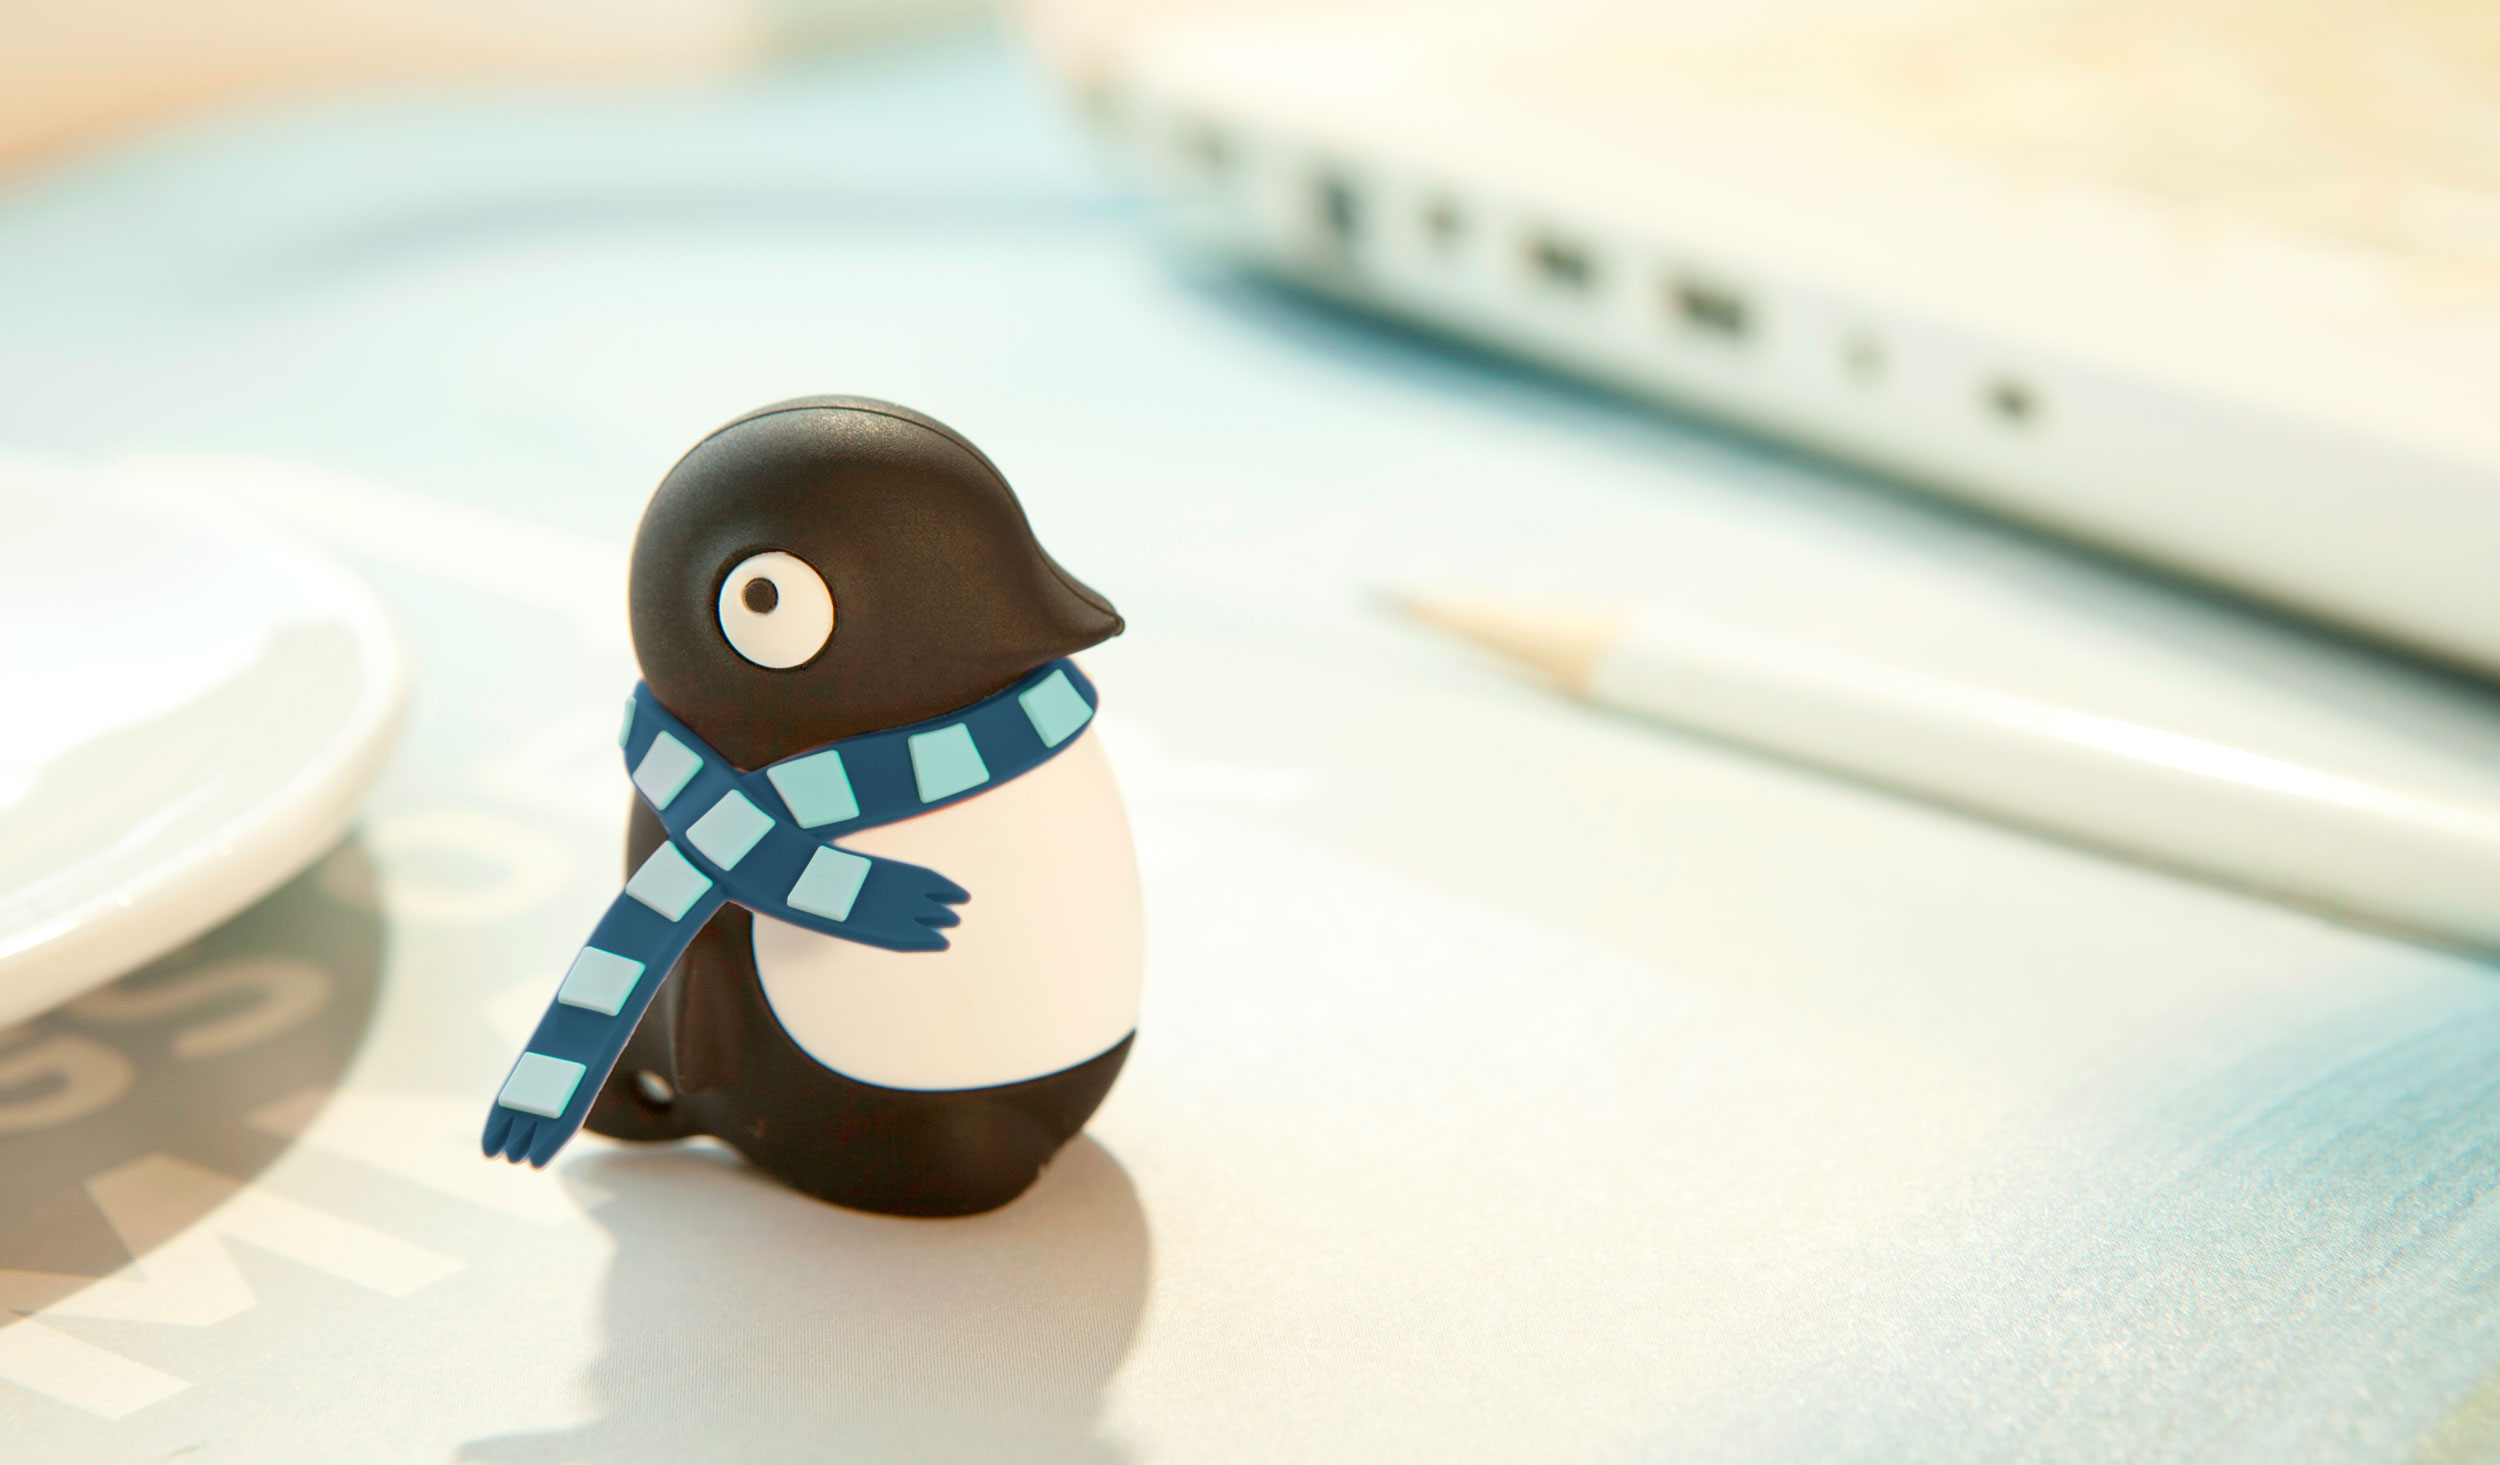 USB Bone 16GB Penguin - DR15011-16BK